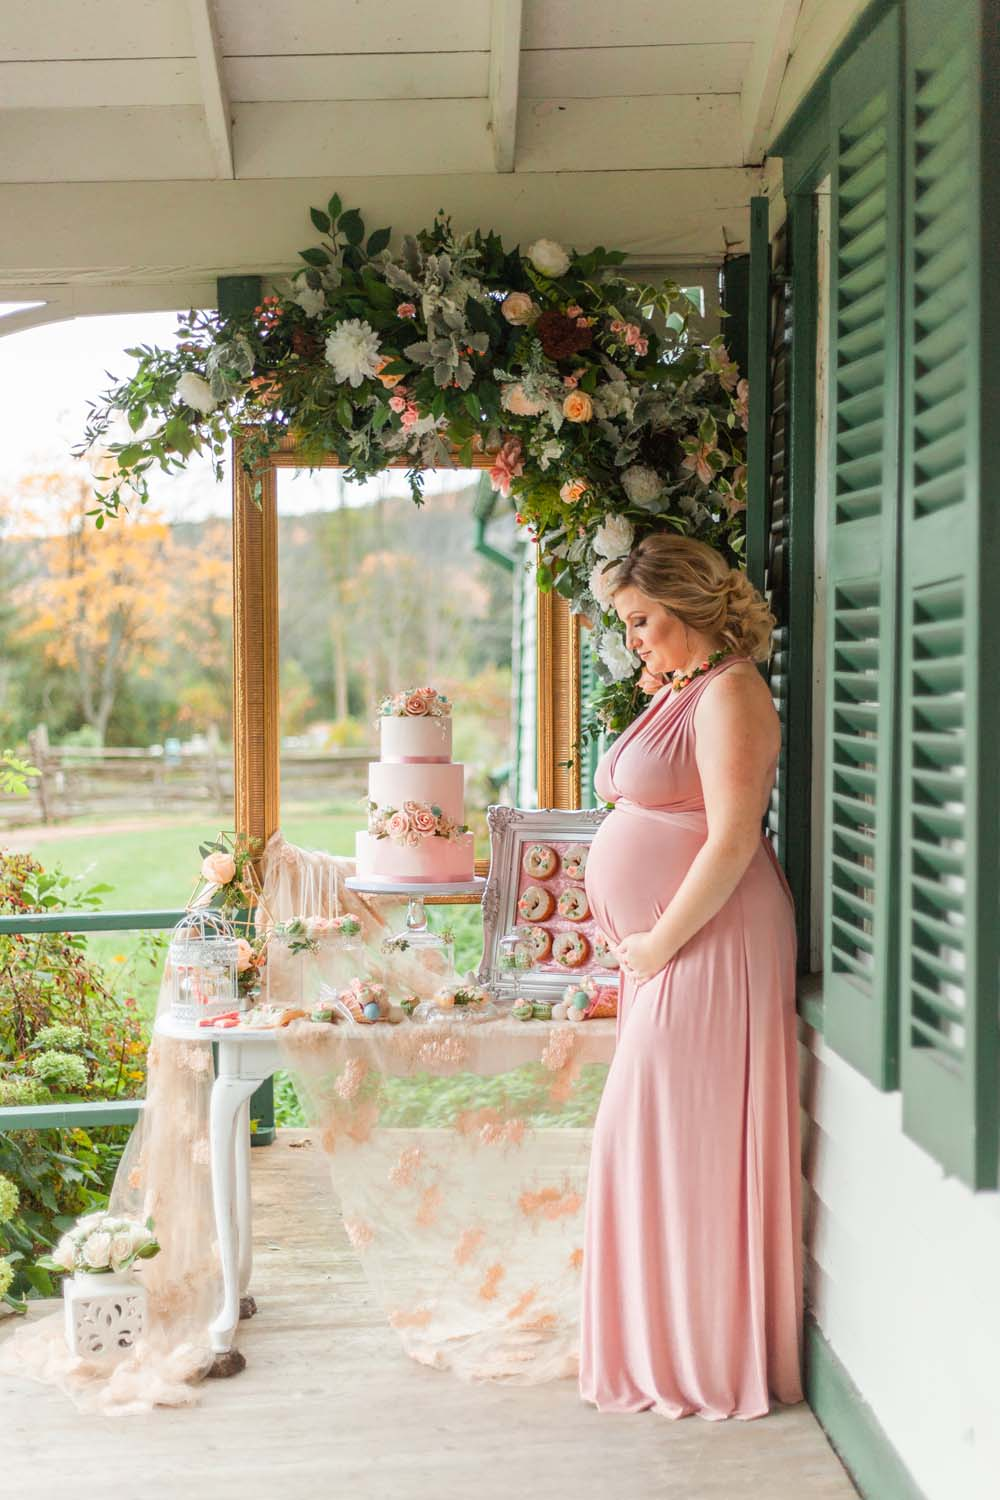 Henkaa Spring/Summer 2019 Bridesmaid Dresses - Expecting side profile